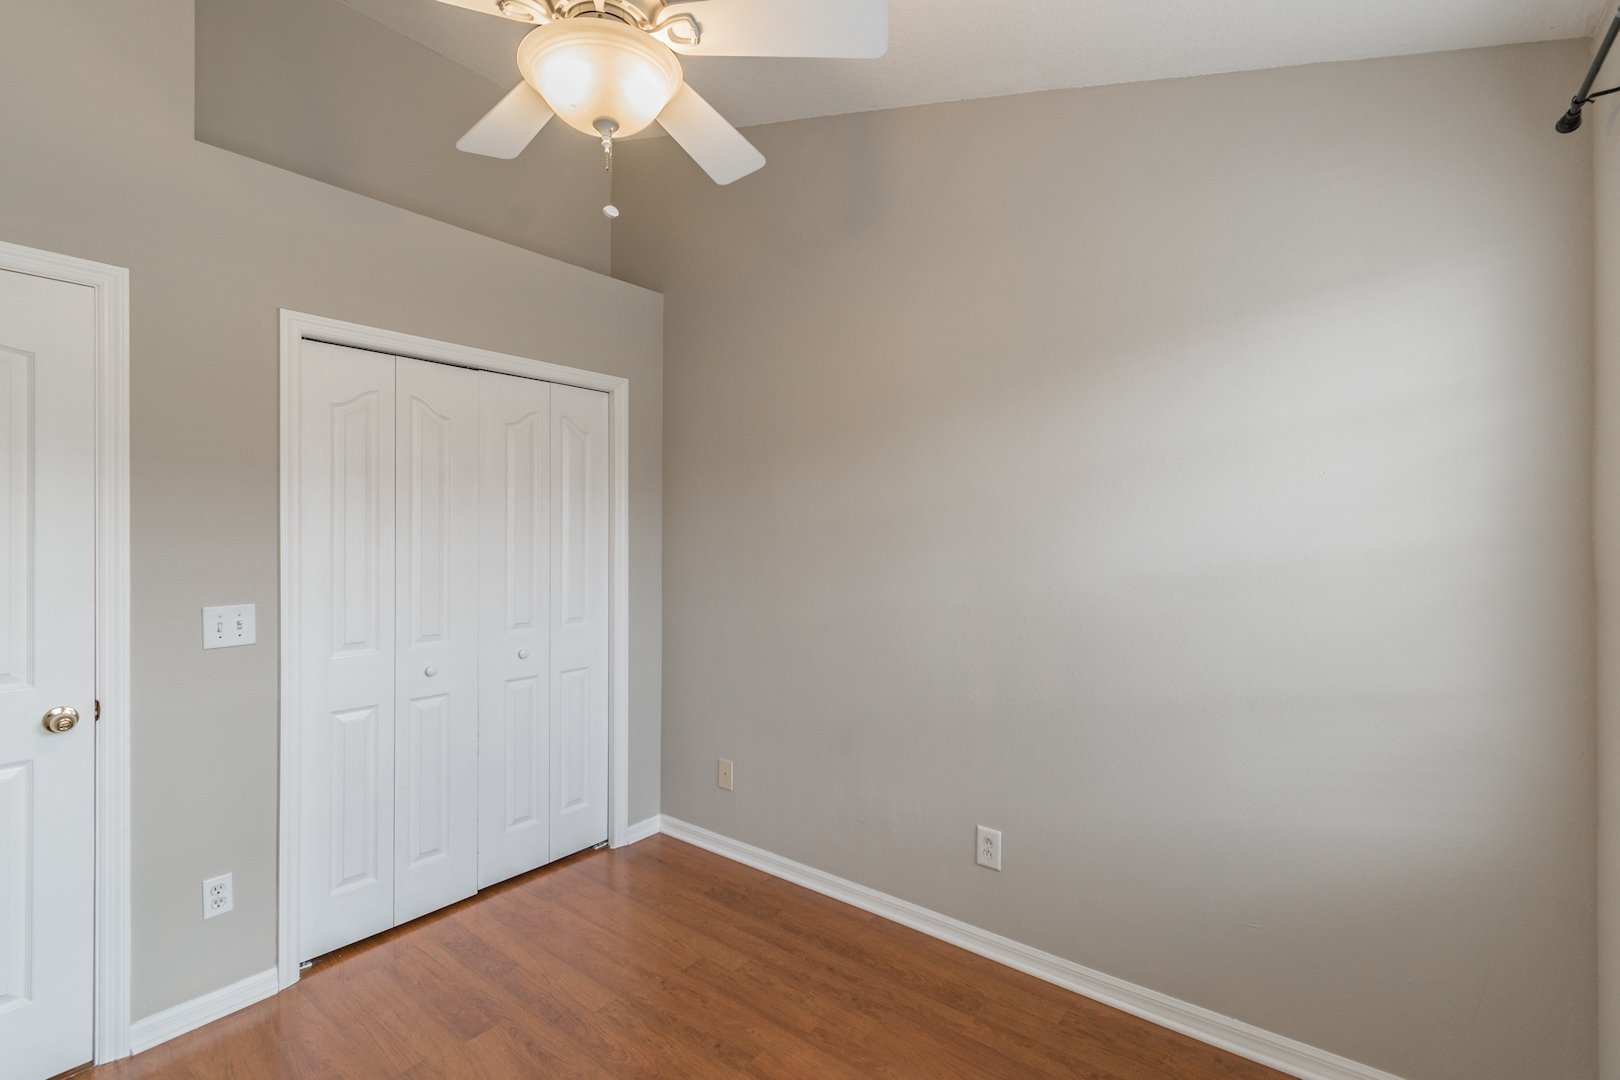 2929 bayshore Pointe Dr. Tampa Fl, Bayshore Pointe Townhomes (12)